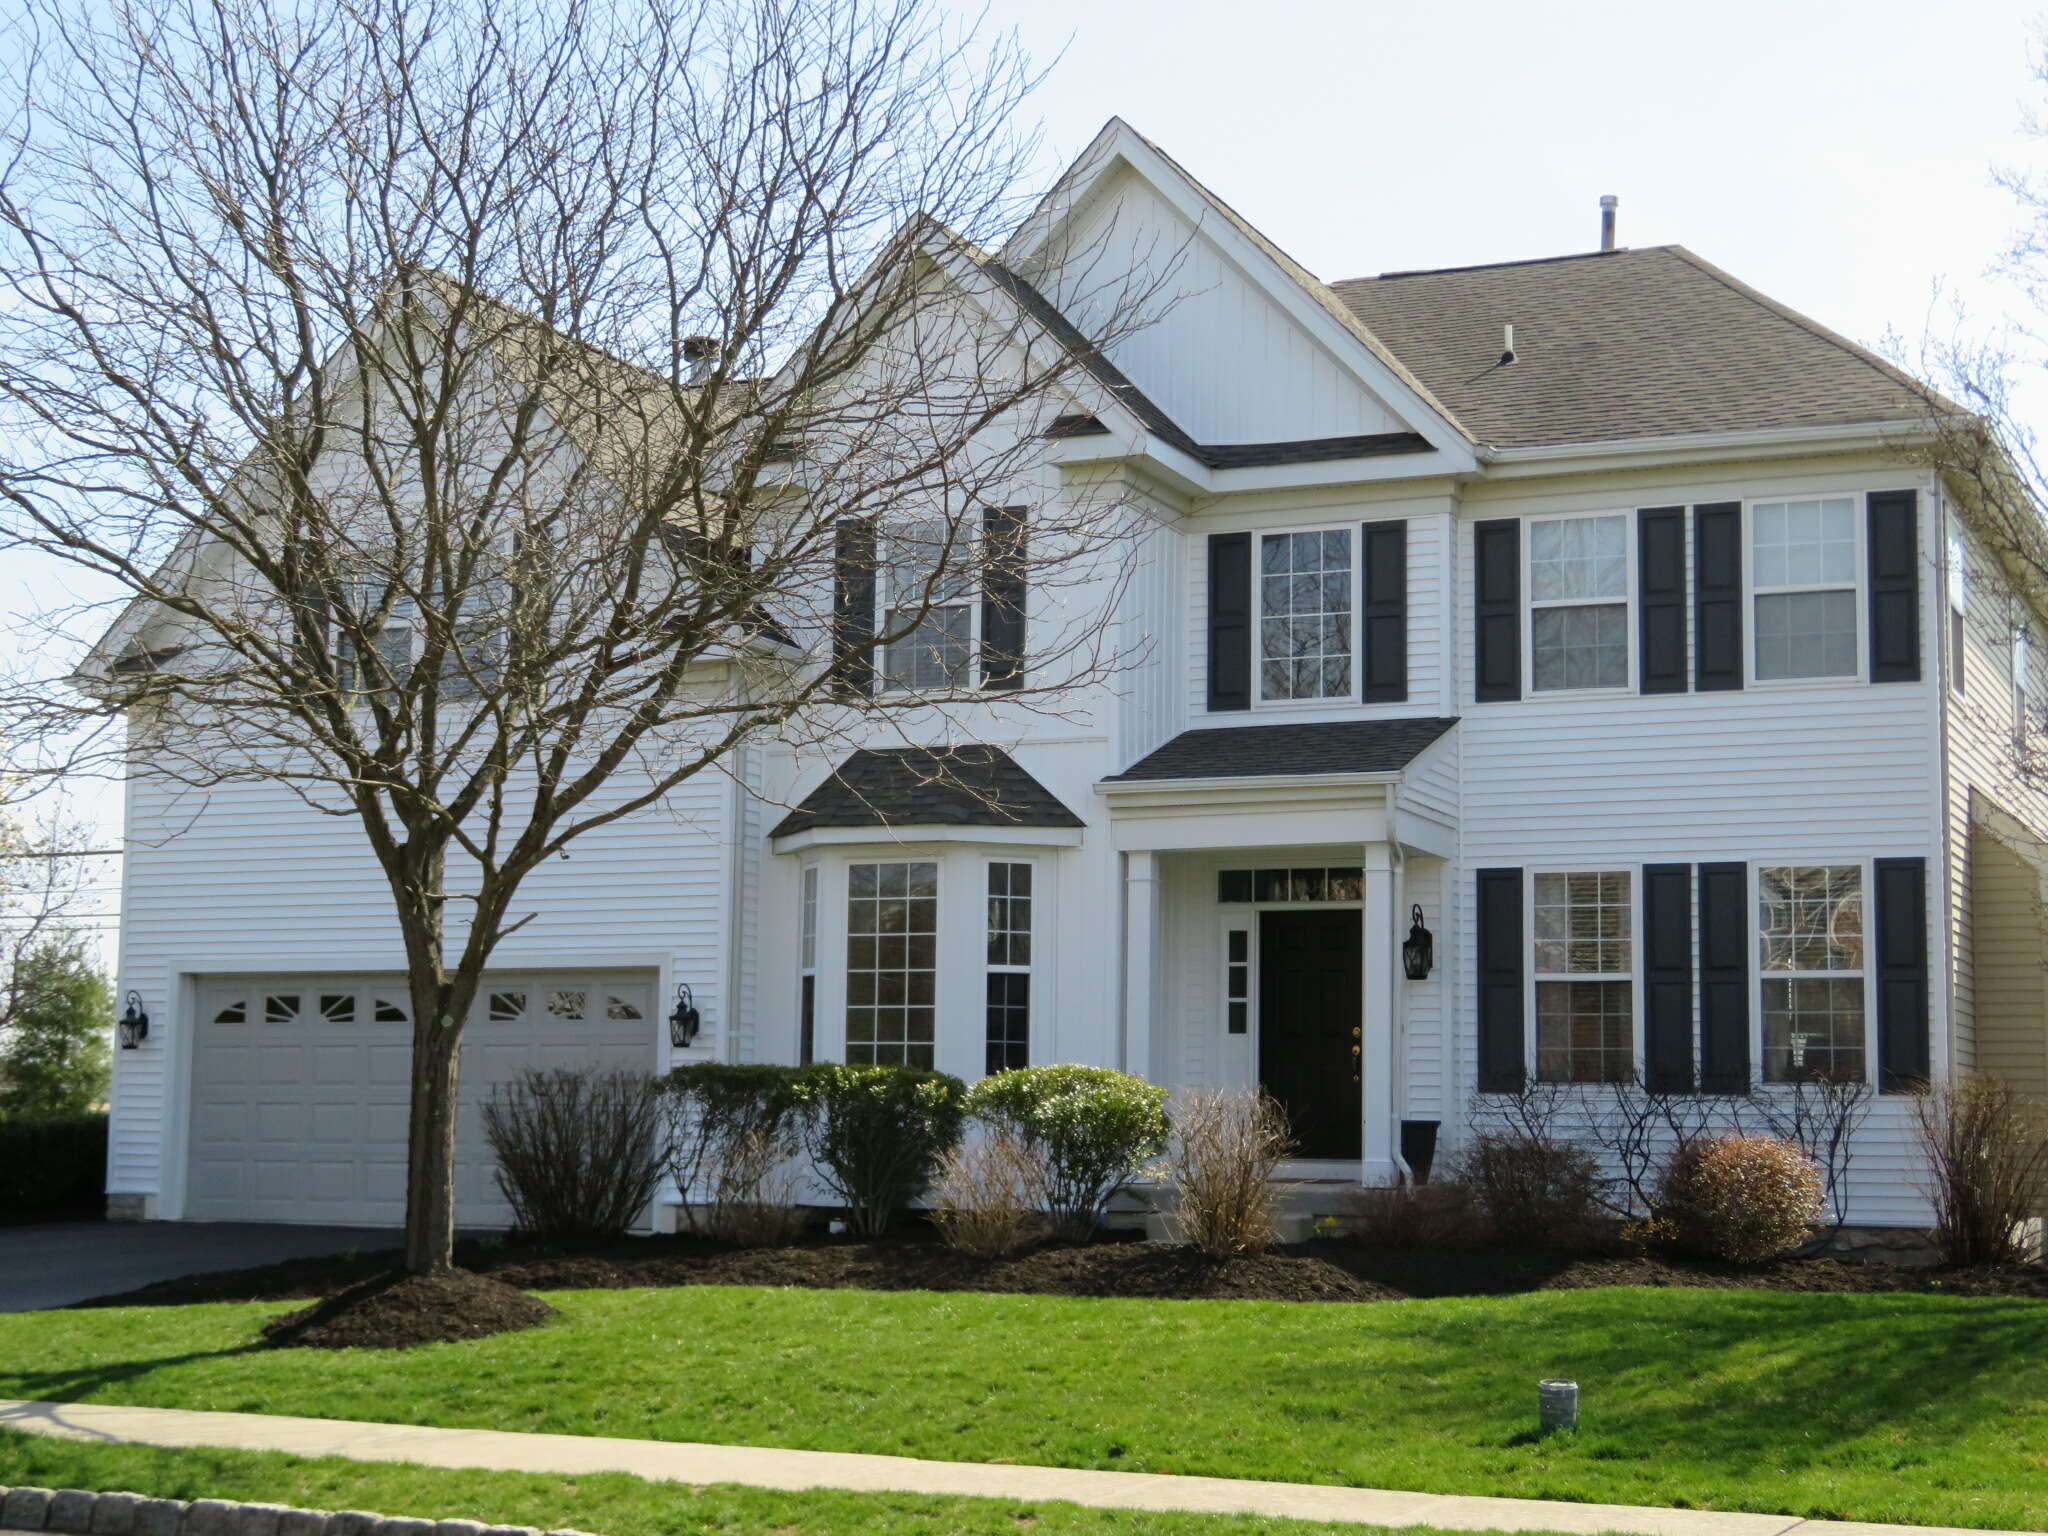 Single Family for Sale at 2335 Oxfordshire Dr 2335 Oxfordshire Dr Furlong, Pennsylvania 18925 United States